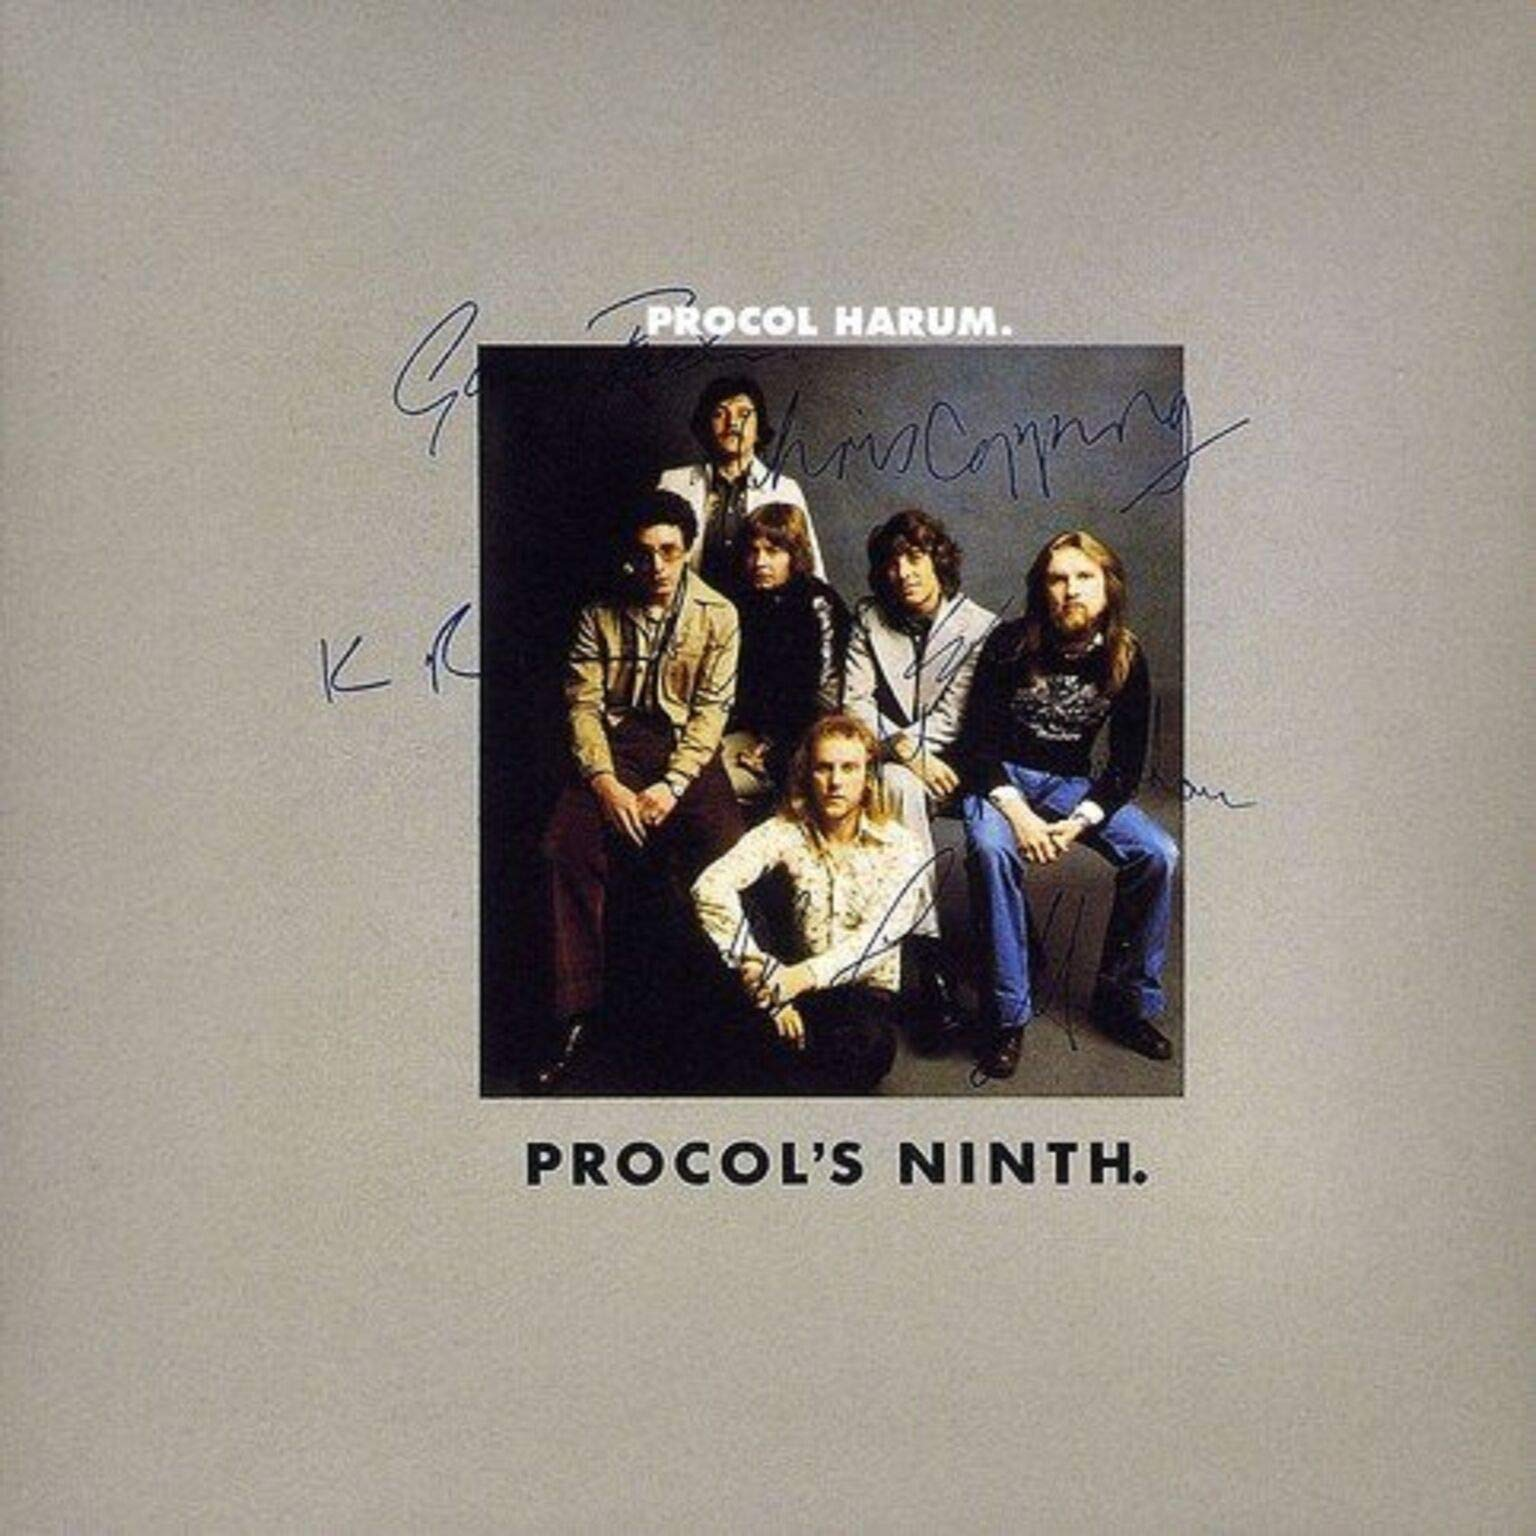 CD : Procol Harum - Procol's Ninth (Expanded Version, Remastered, United Kingdom - Import)